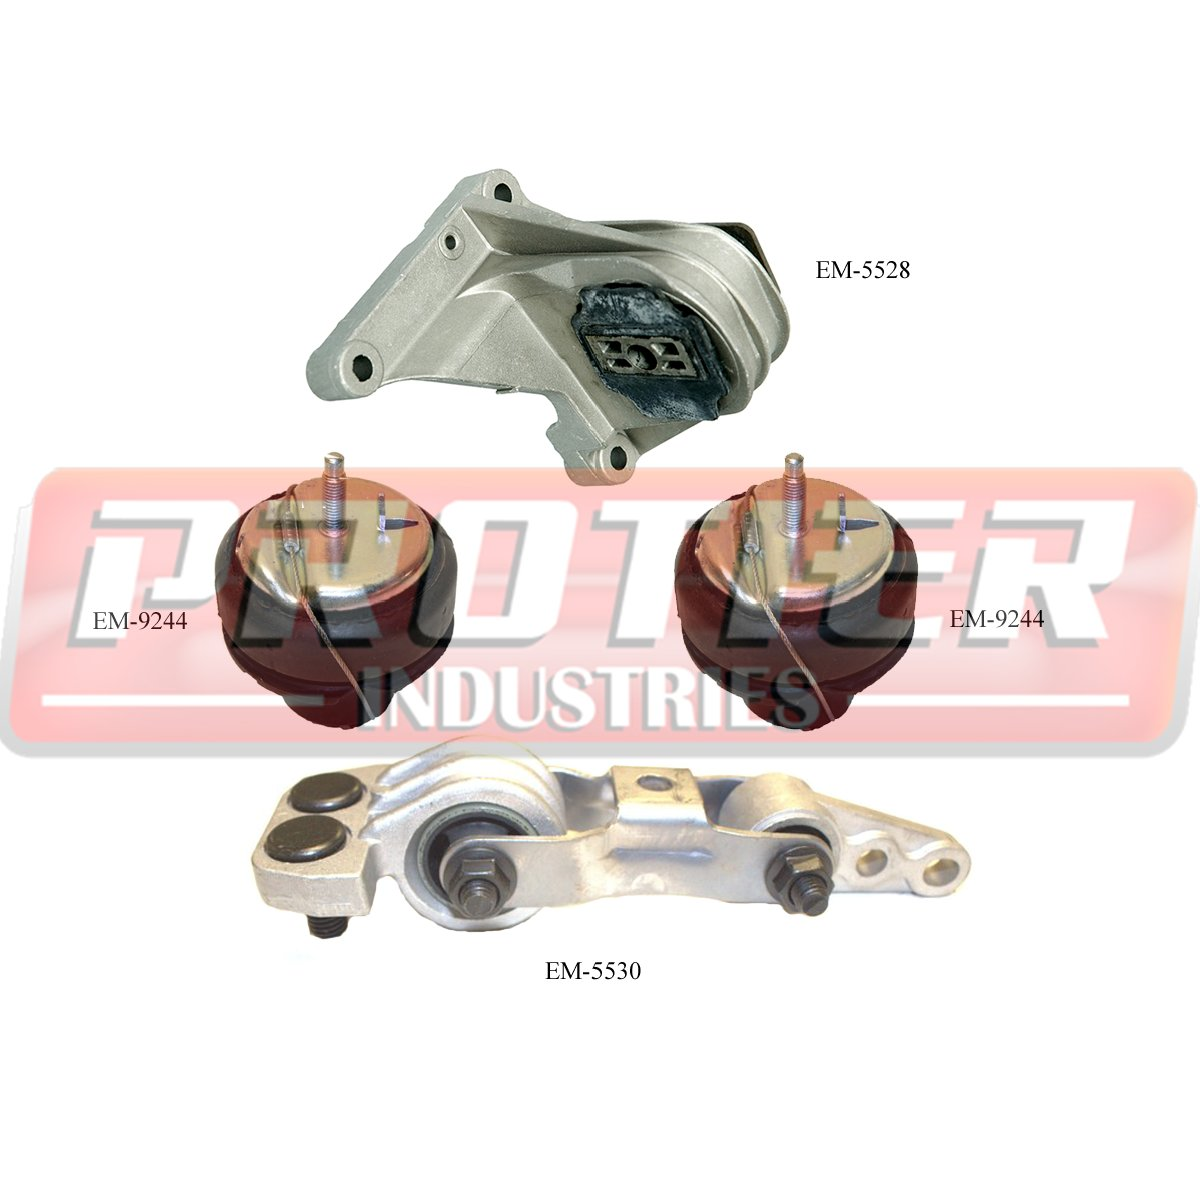 2006 Volvo V70 Transmission: Engine Motor & Trans Mount Set 2001-2009 Volvo S60 S80 V70